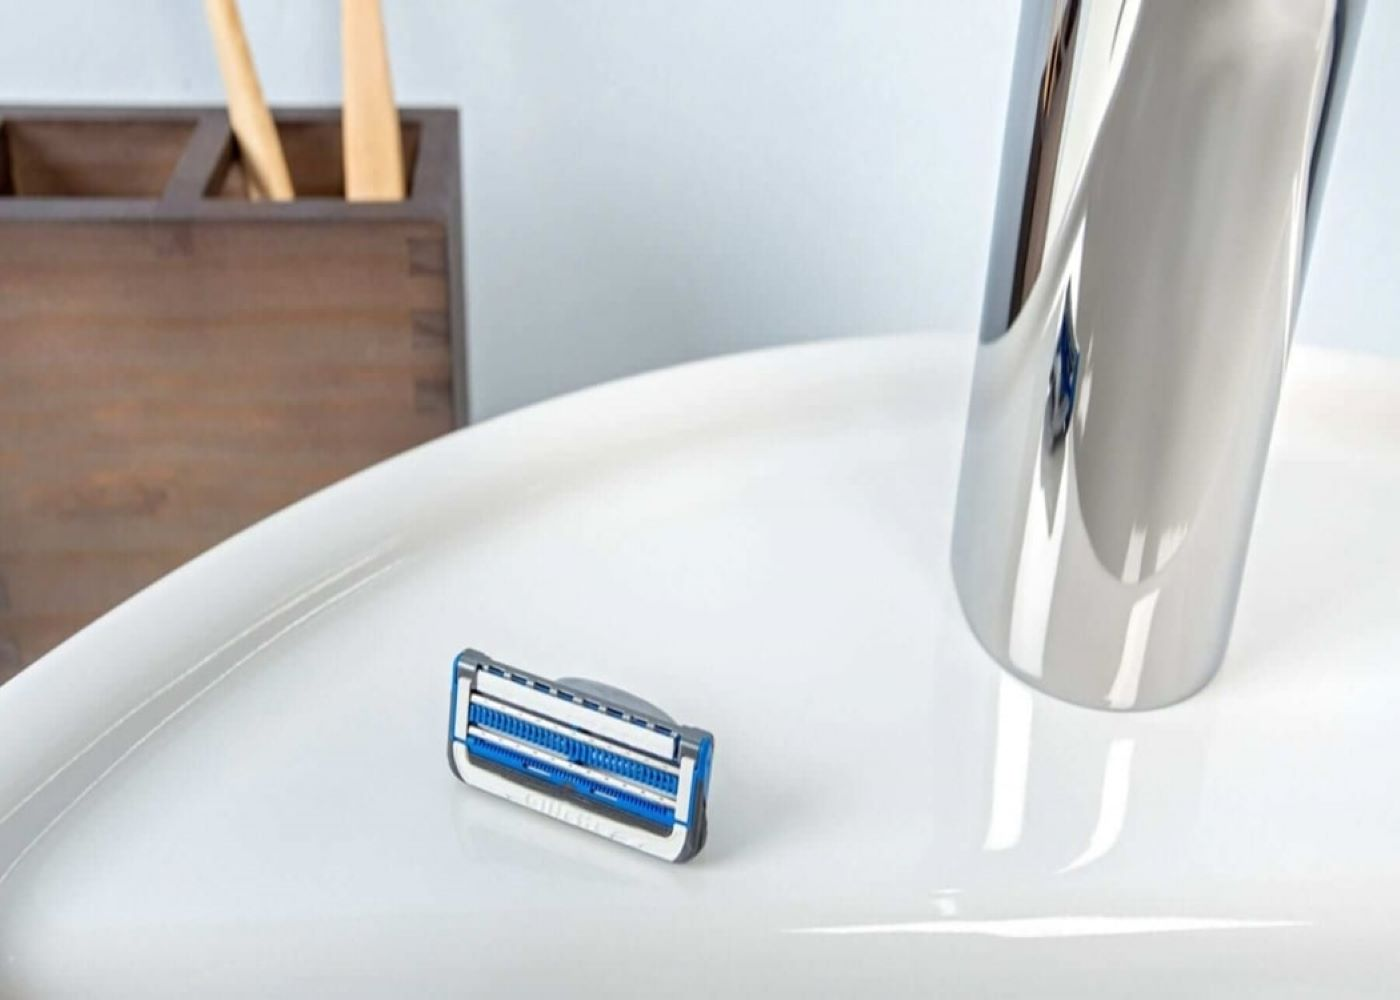 How to Care for Your Razor: Blade Cleaning and Storage Tips